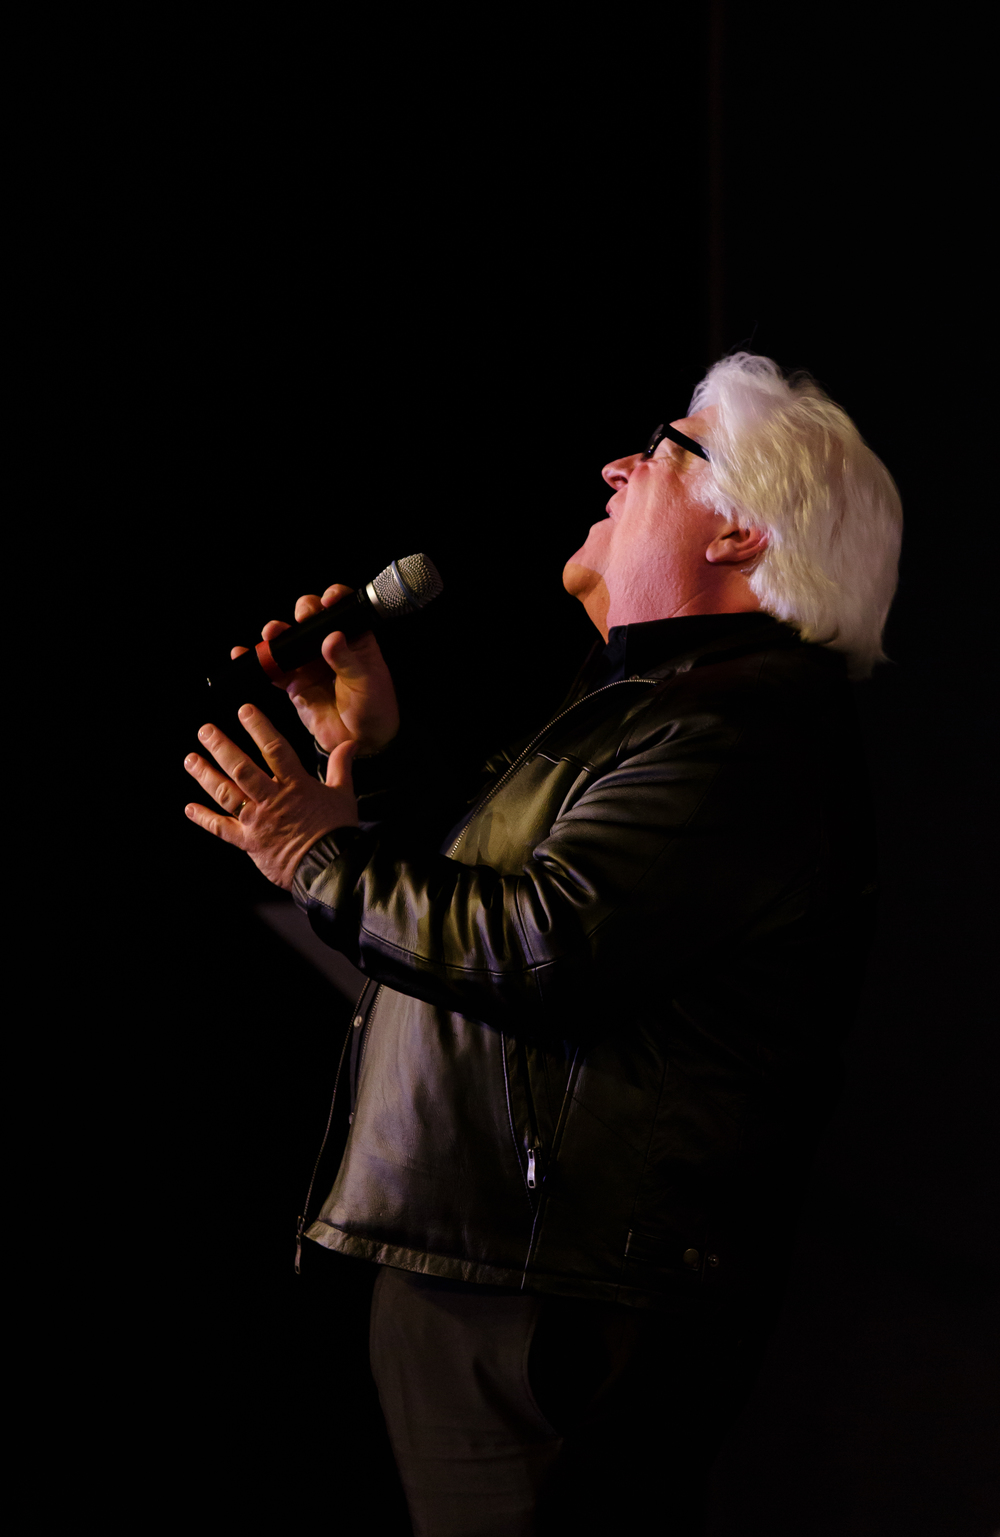 Steve Lively, vocalist